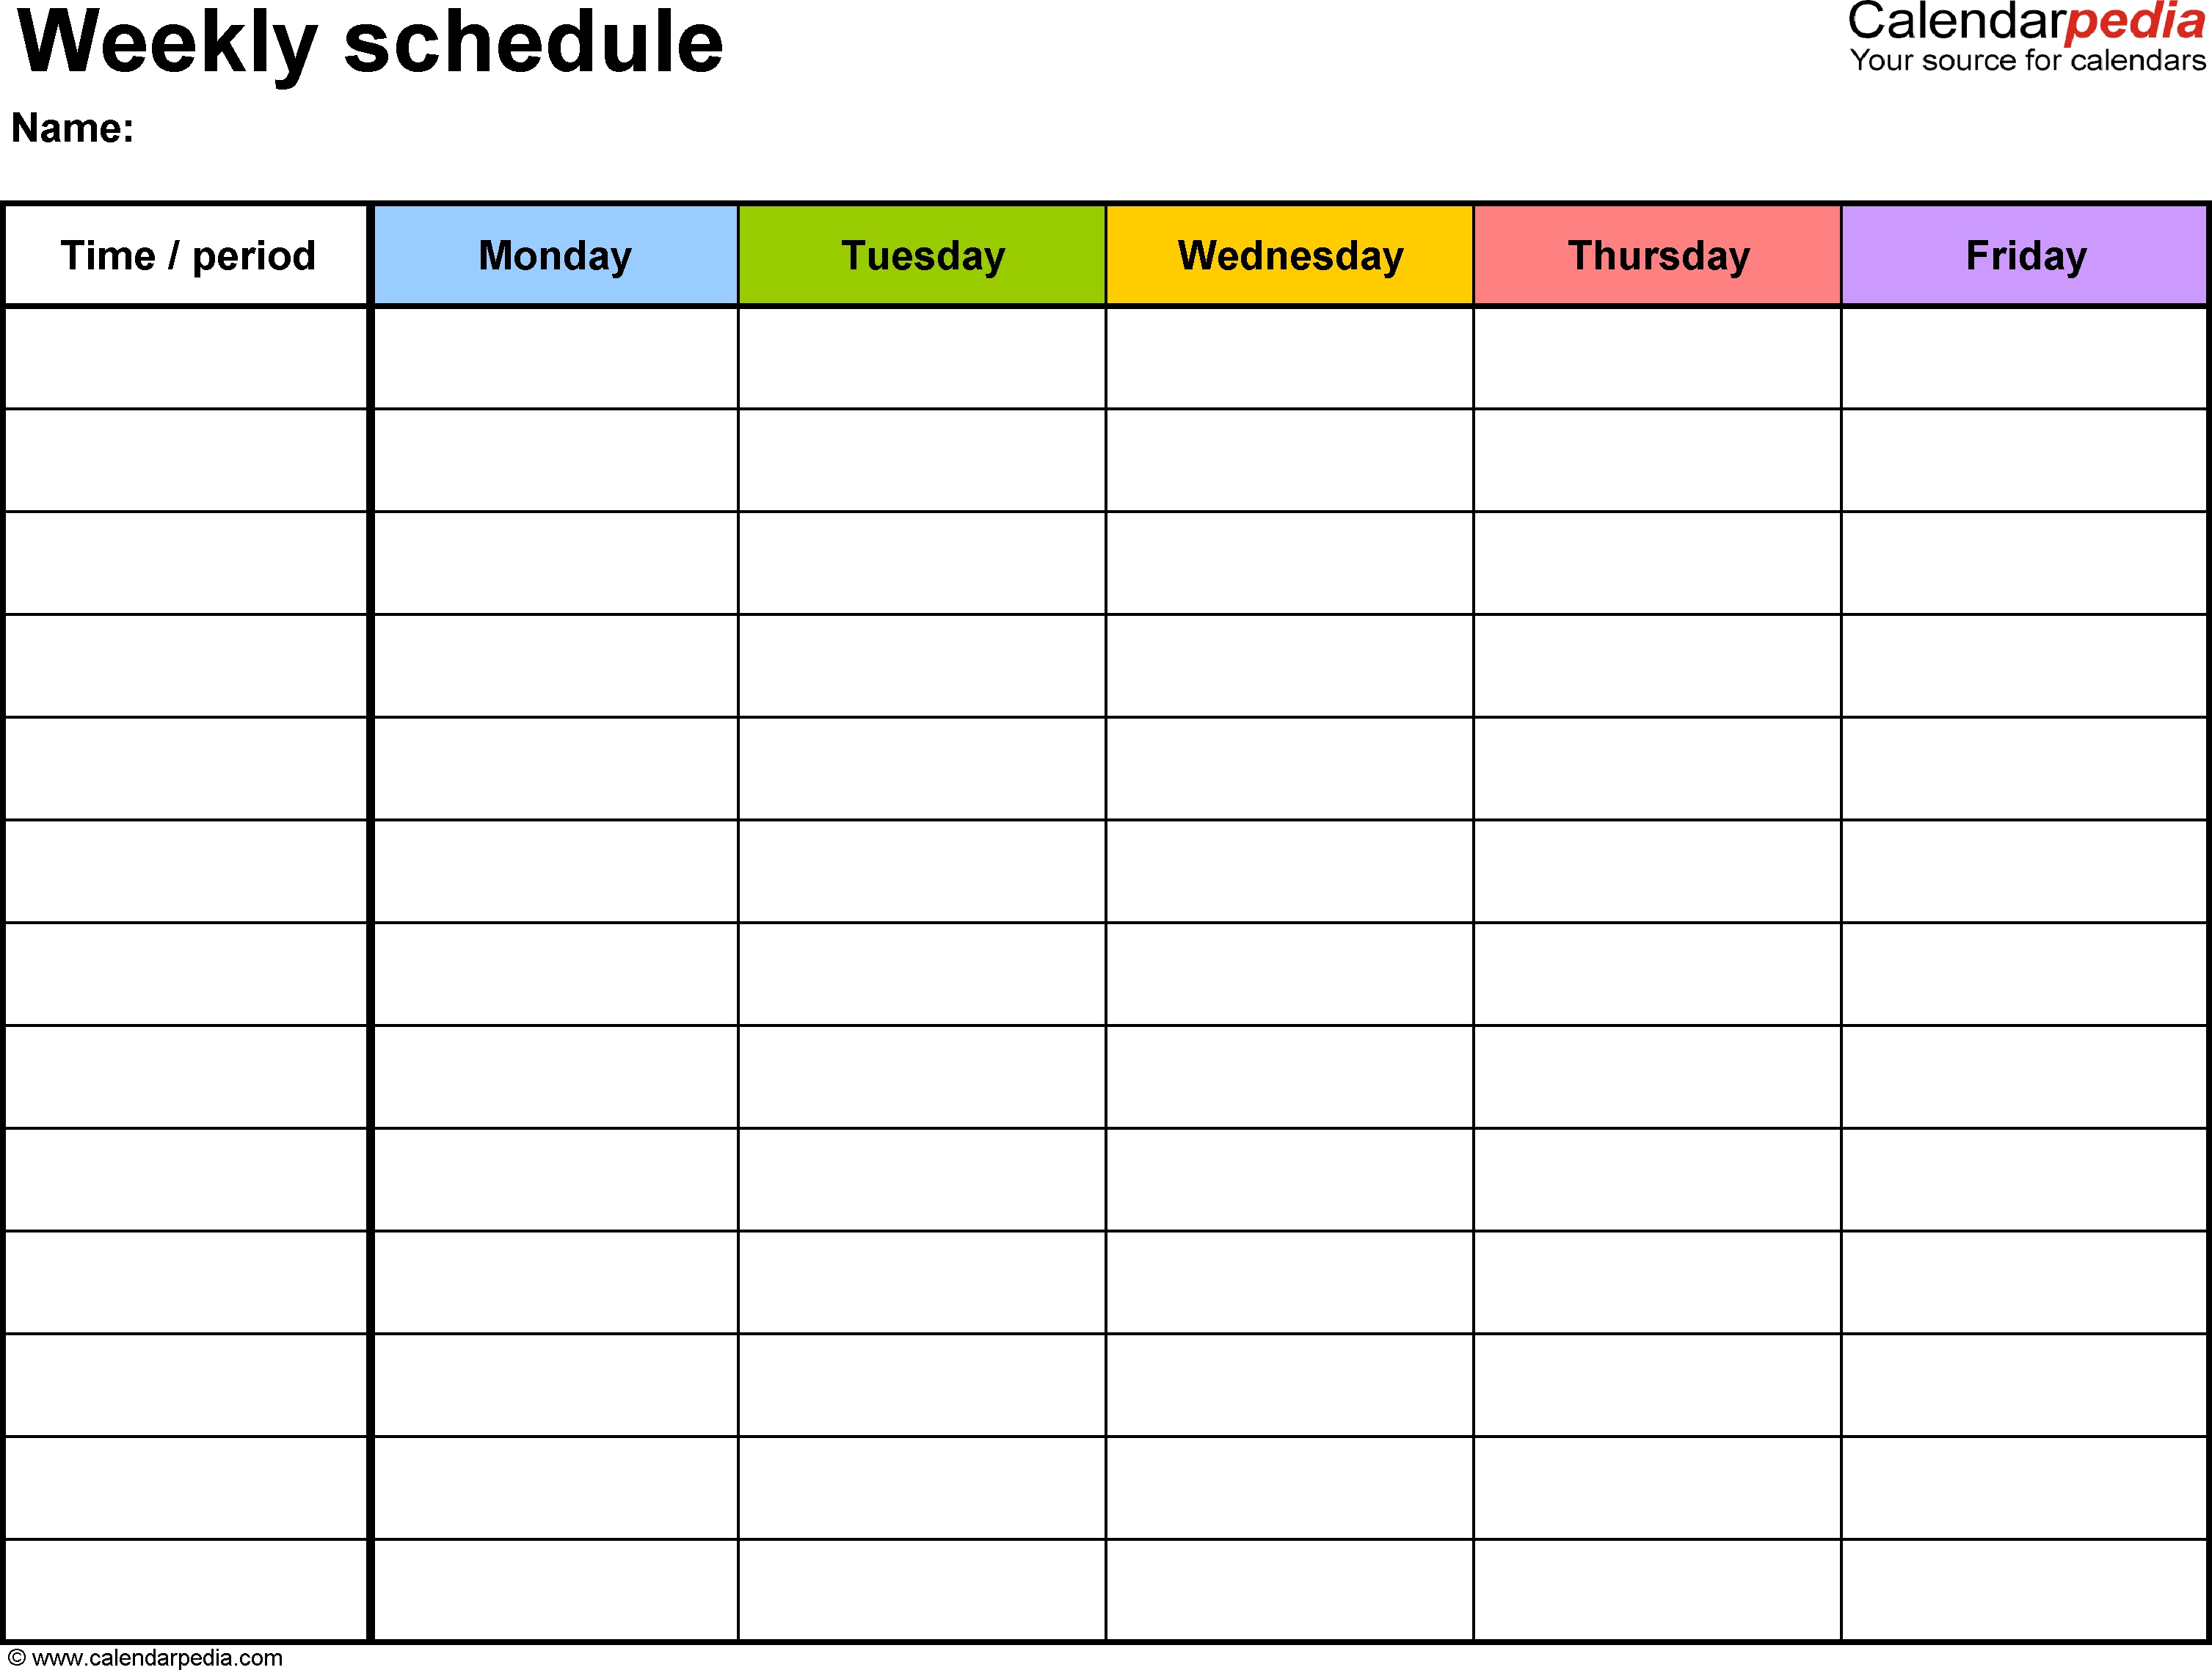 Free Weekly Schedule Templates For Pdf 18 Templates3abry